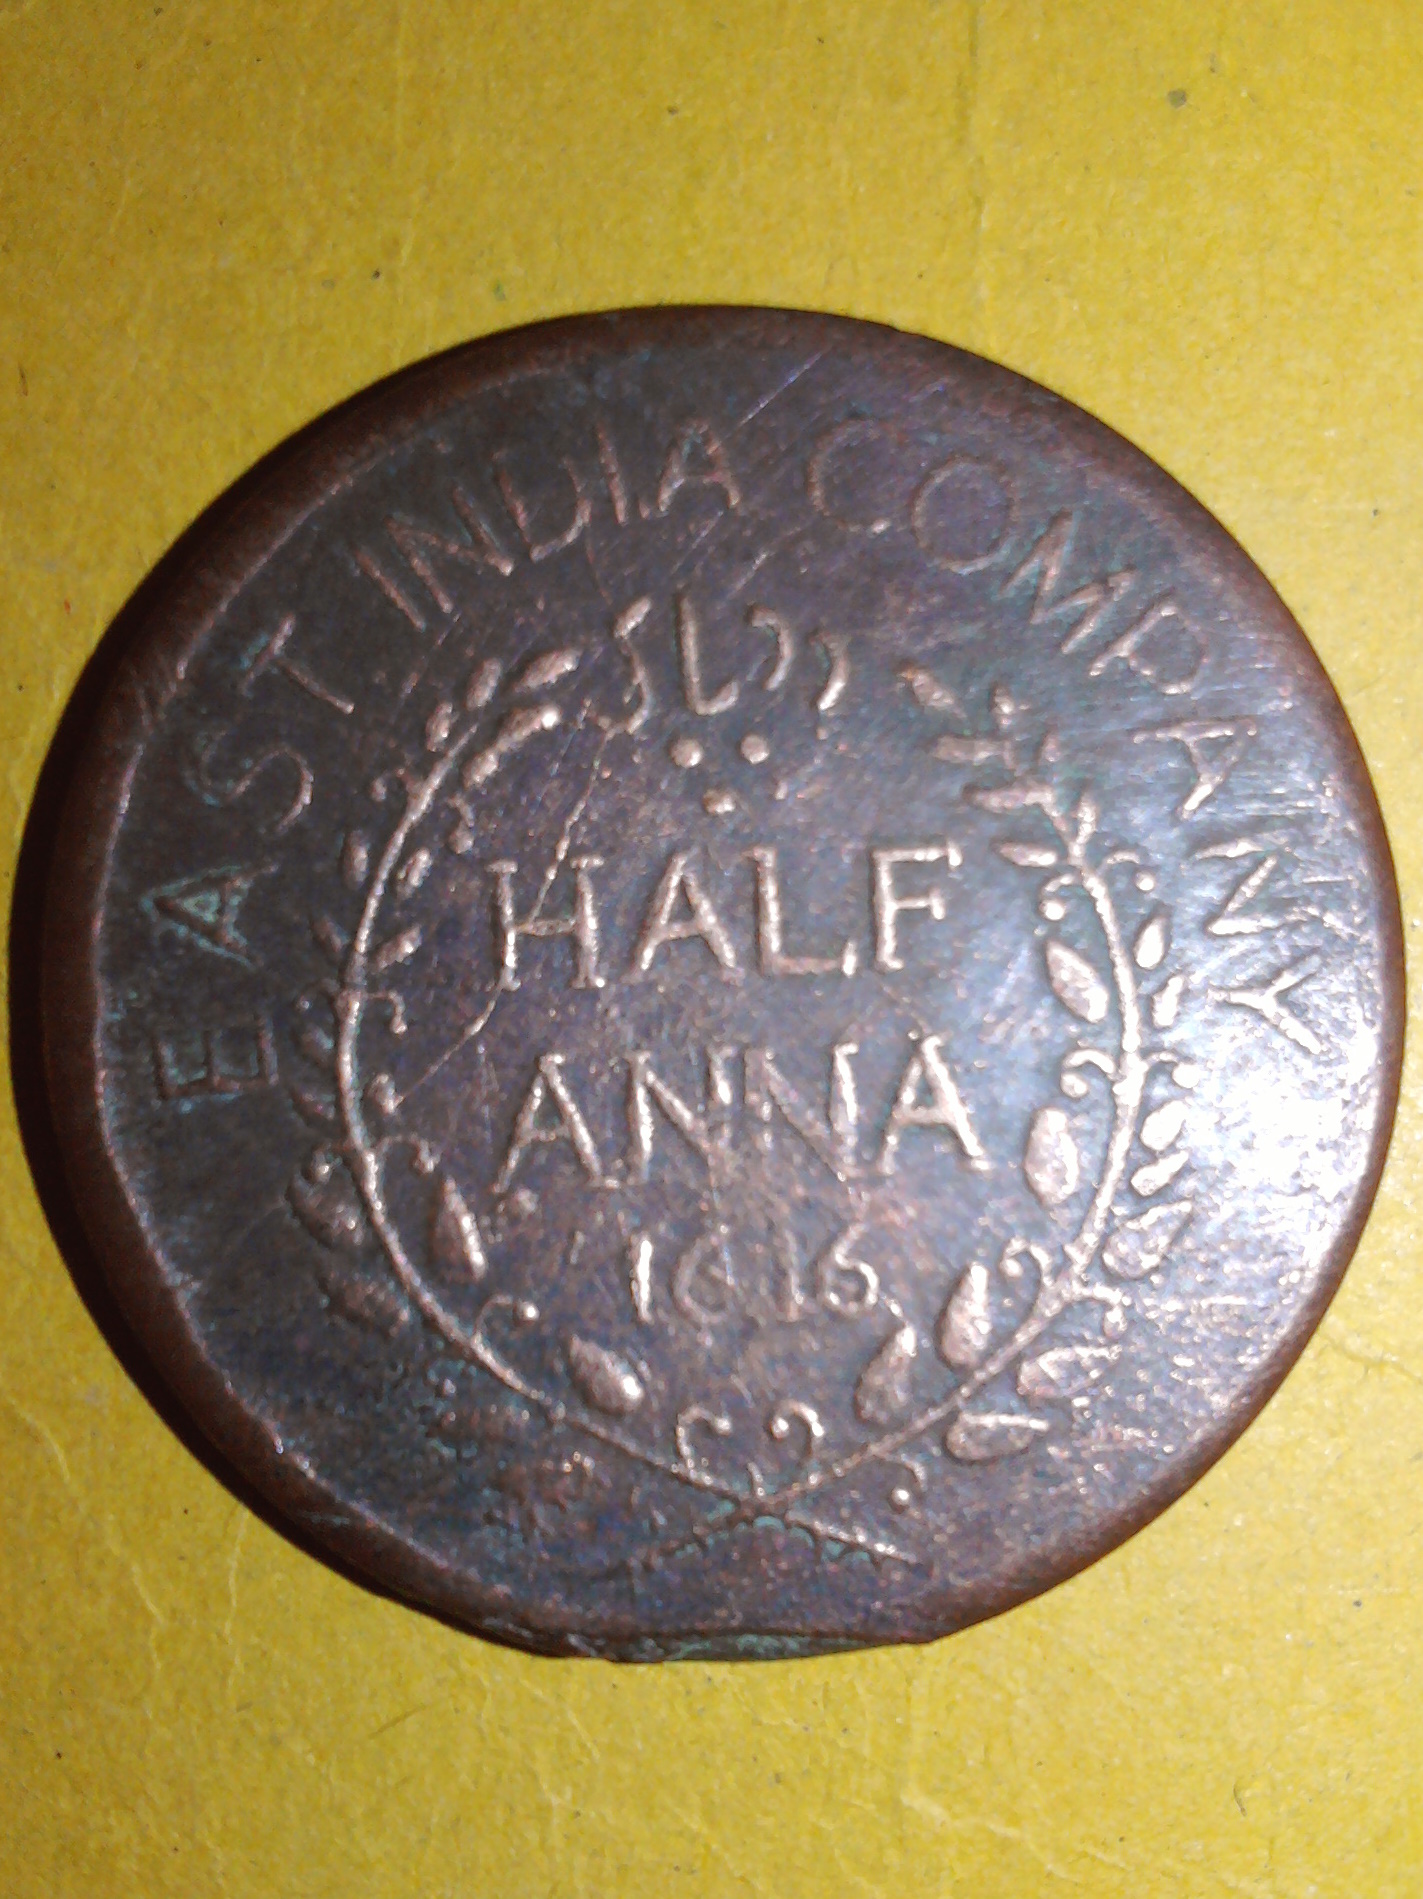 File:East india company half anna coin 1616.jpg